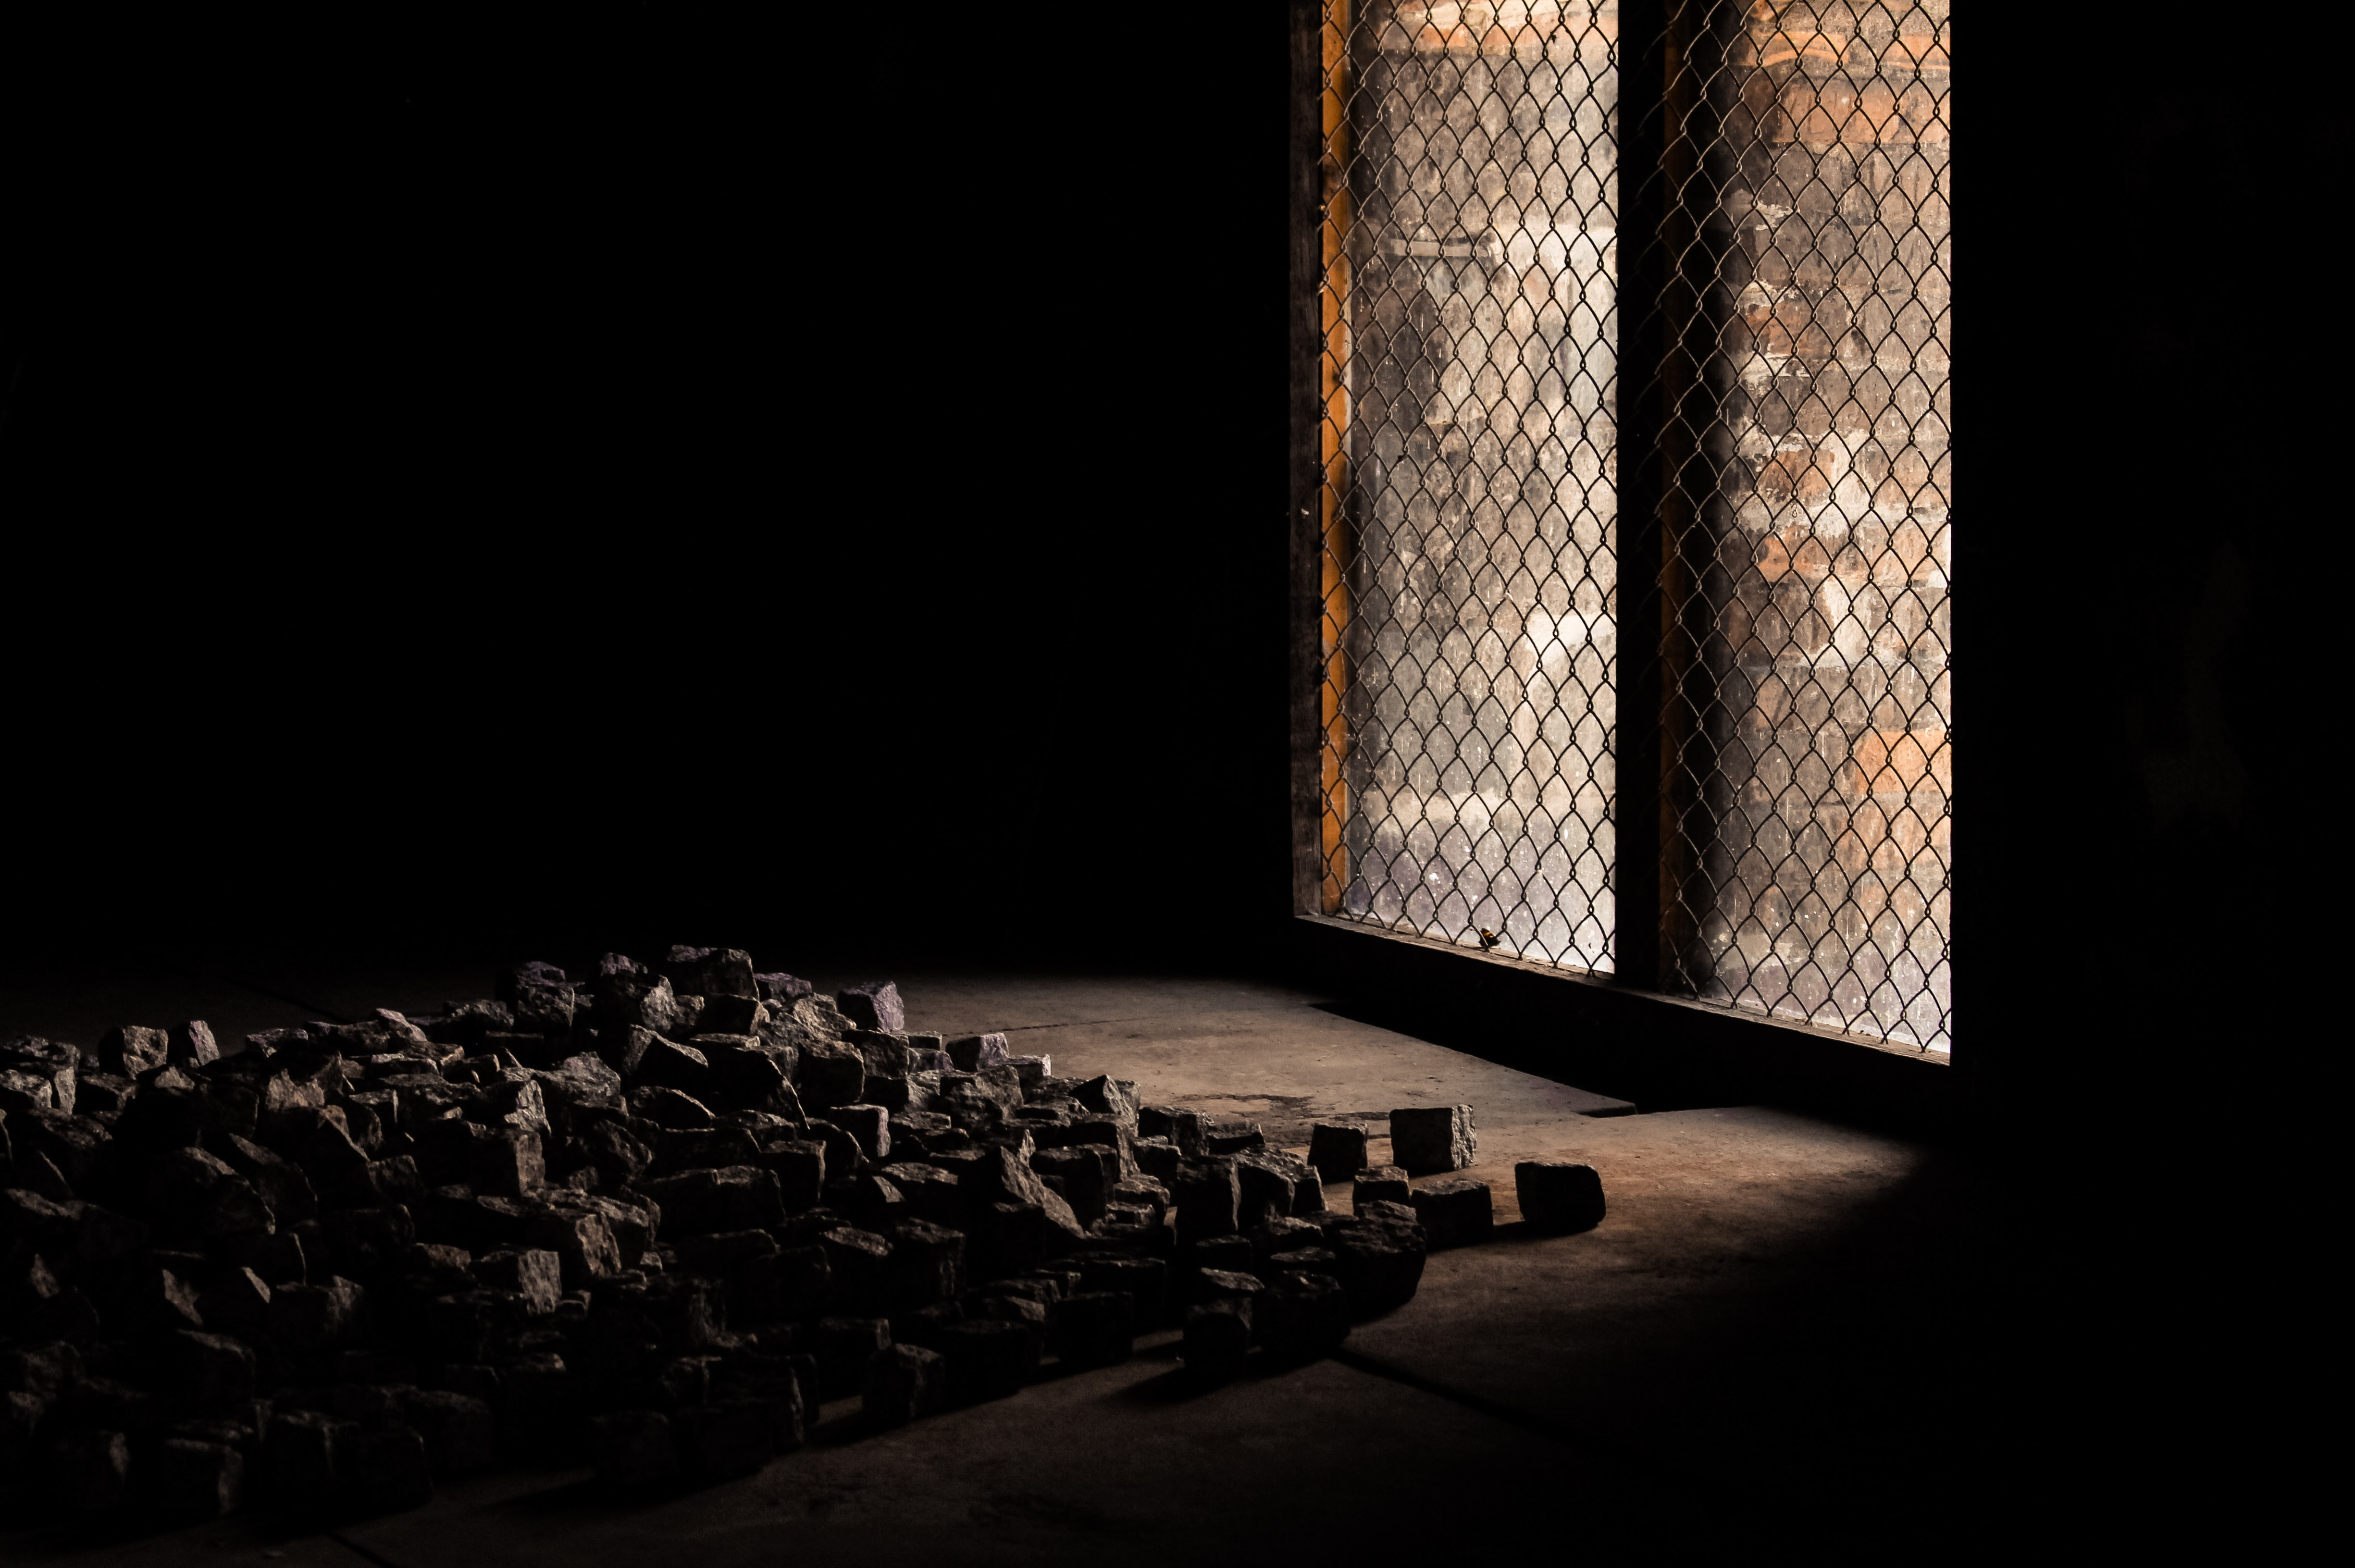 Interior of a dark room with bricks on the floor and light entering through a window